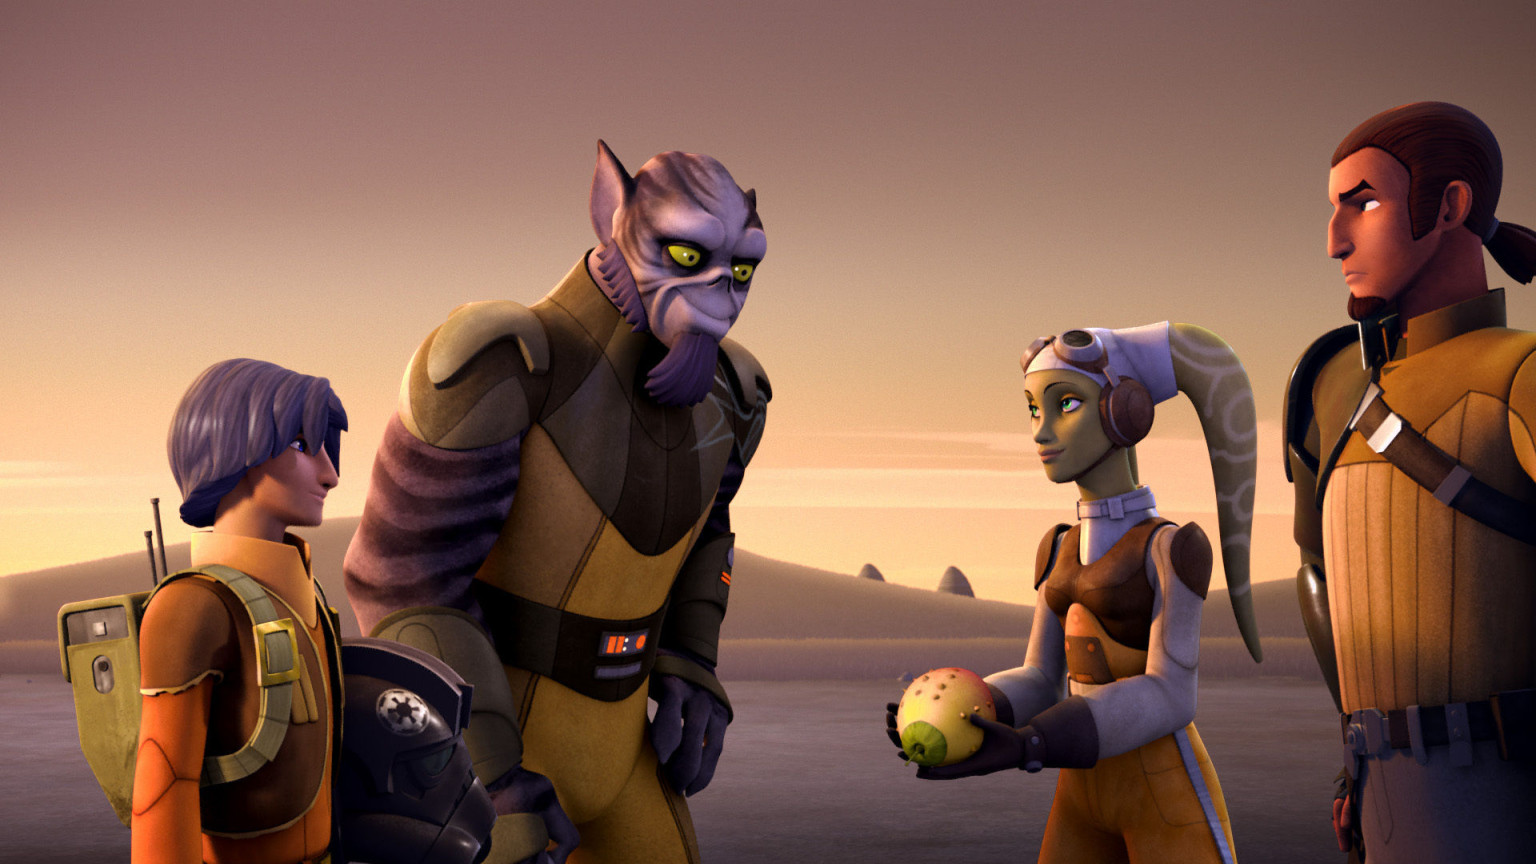 Star Wars Rebels - Zeb, Ezra, Hera, and Kanan